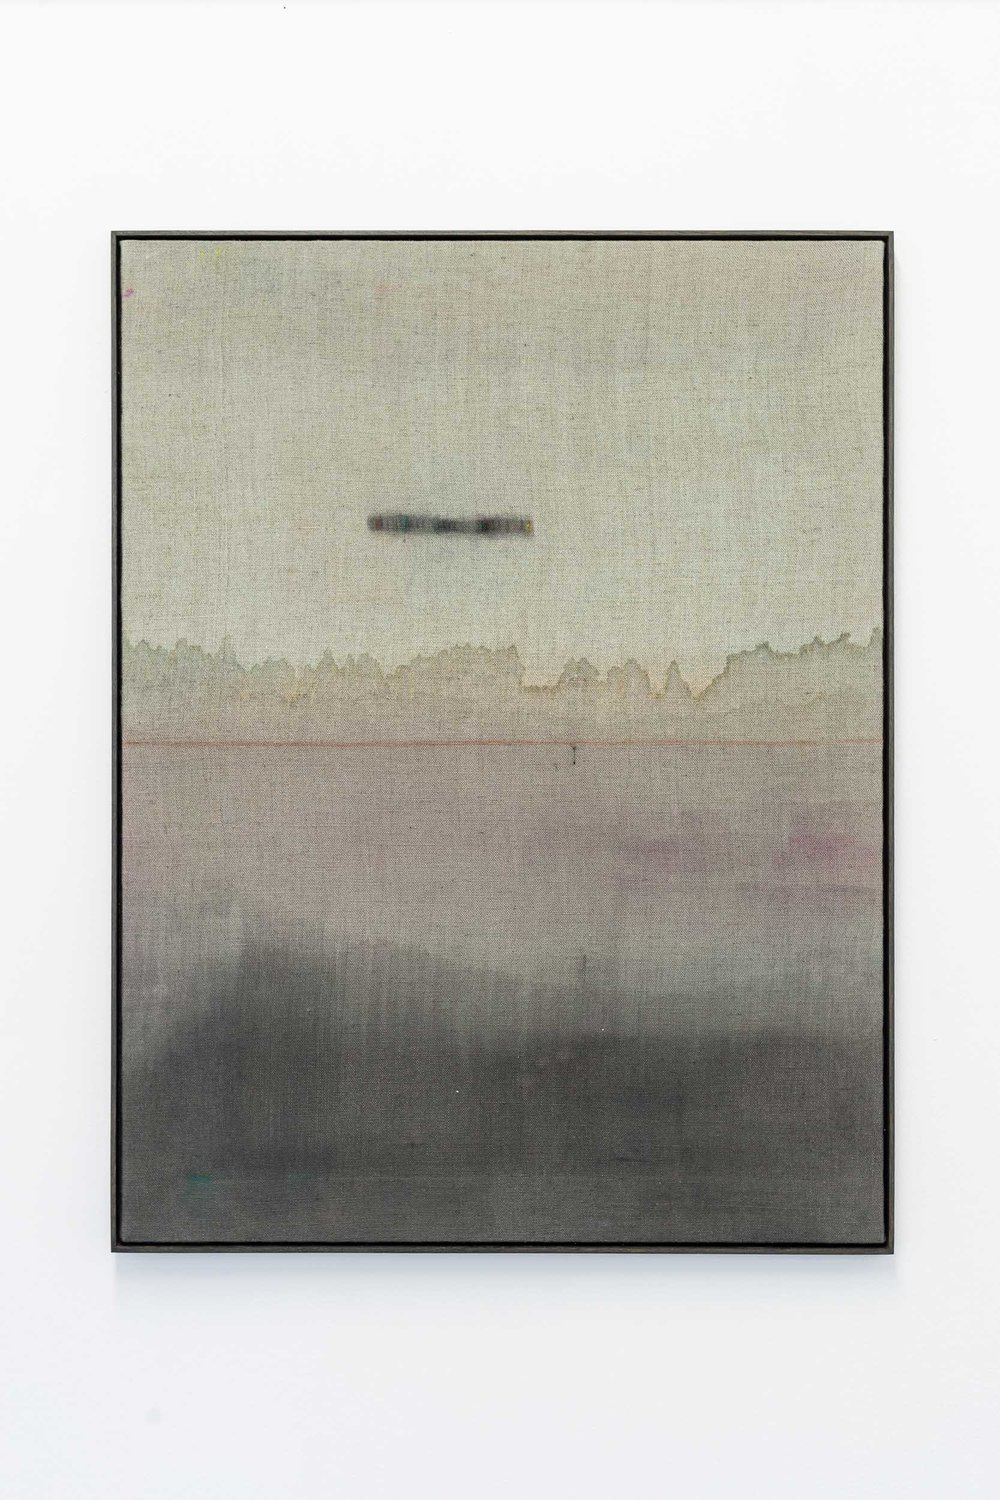 Kirstine Roepstorff,  Illustration # , 2017,   Watering:Pigment, cloth, linen  ,   72 x 94 cm Photo: Kilian Bannwart